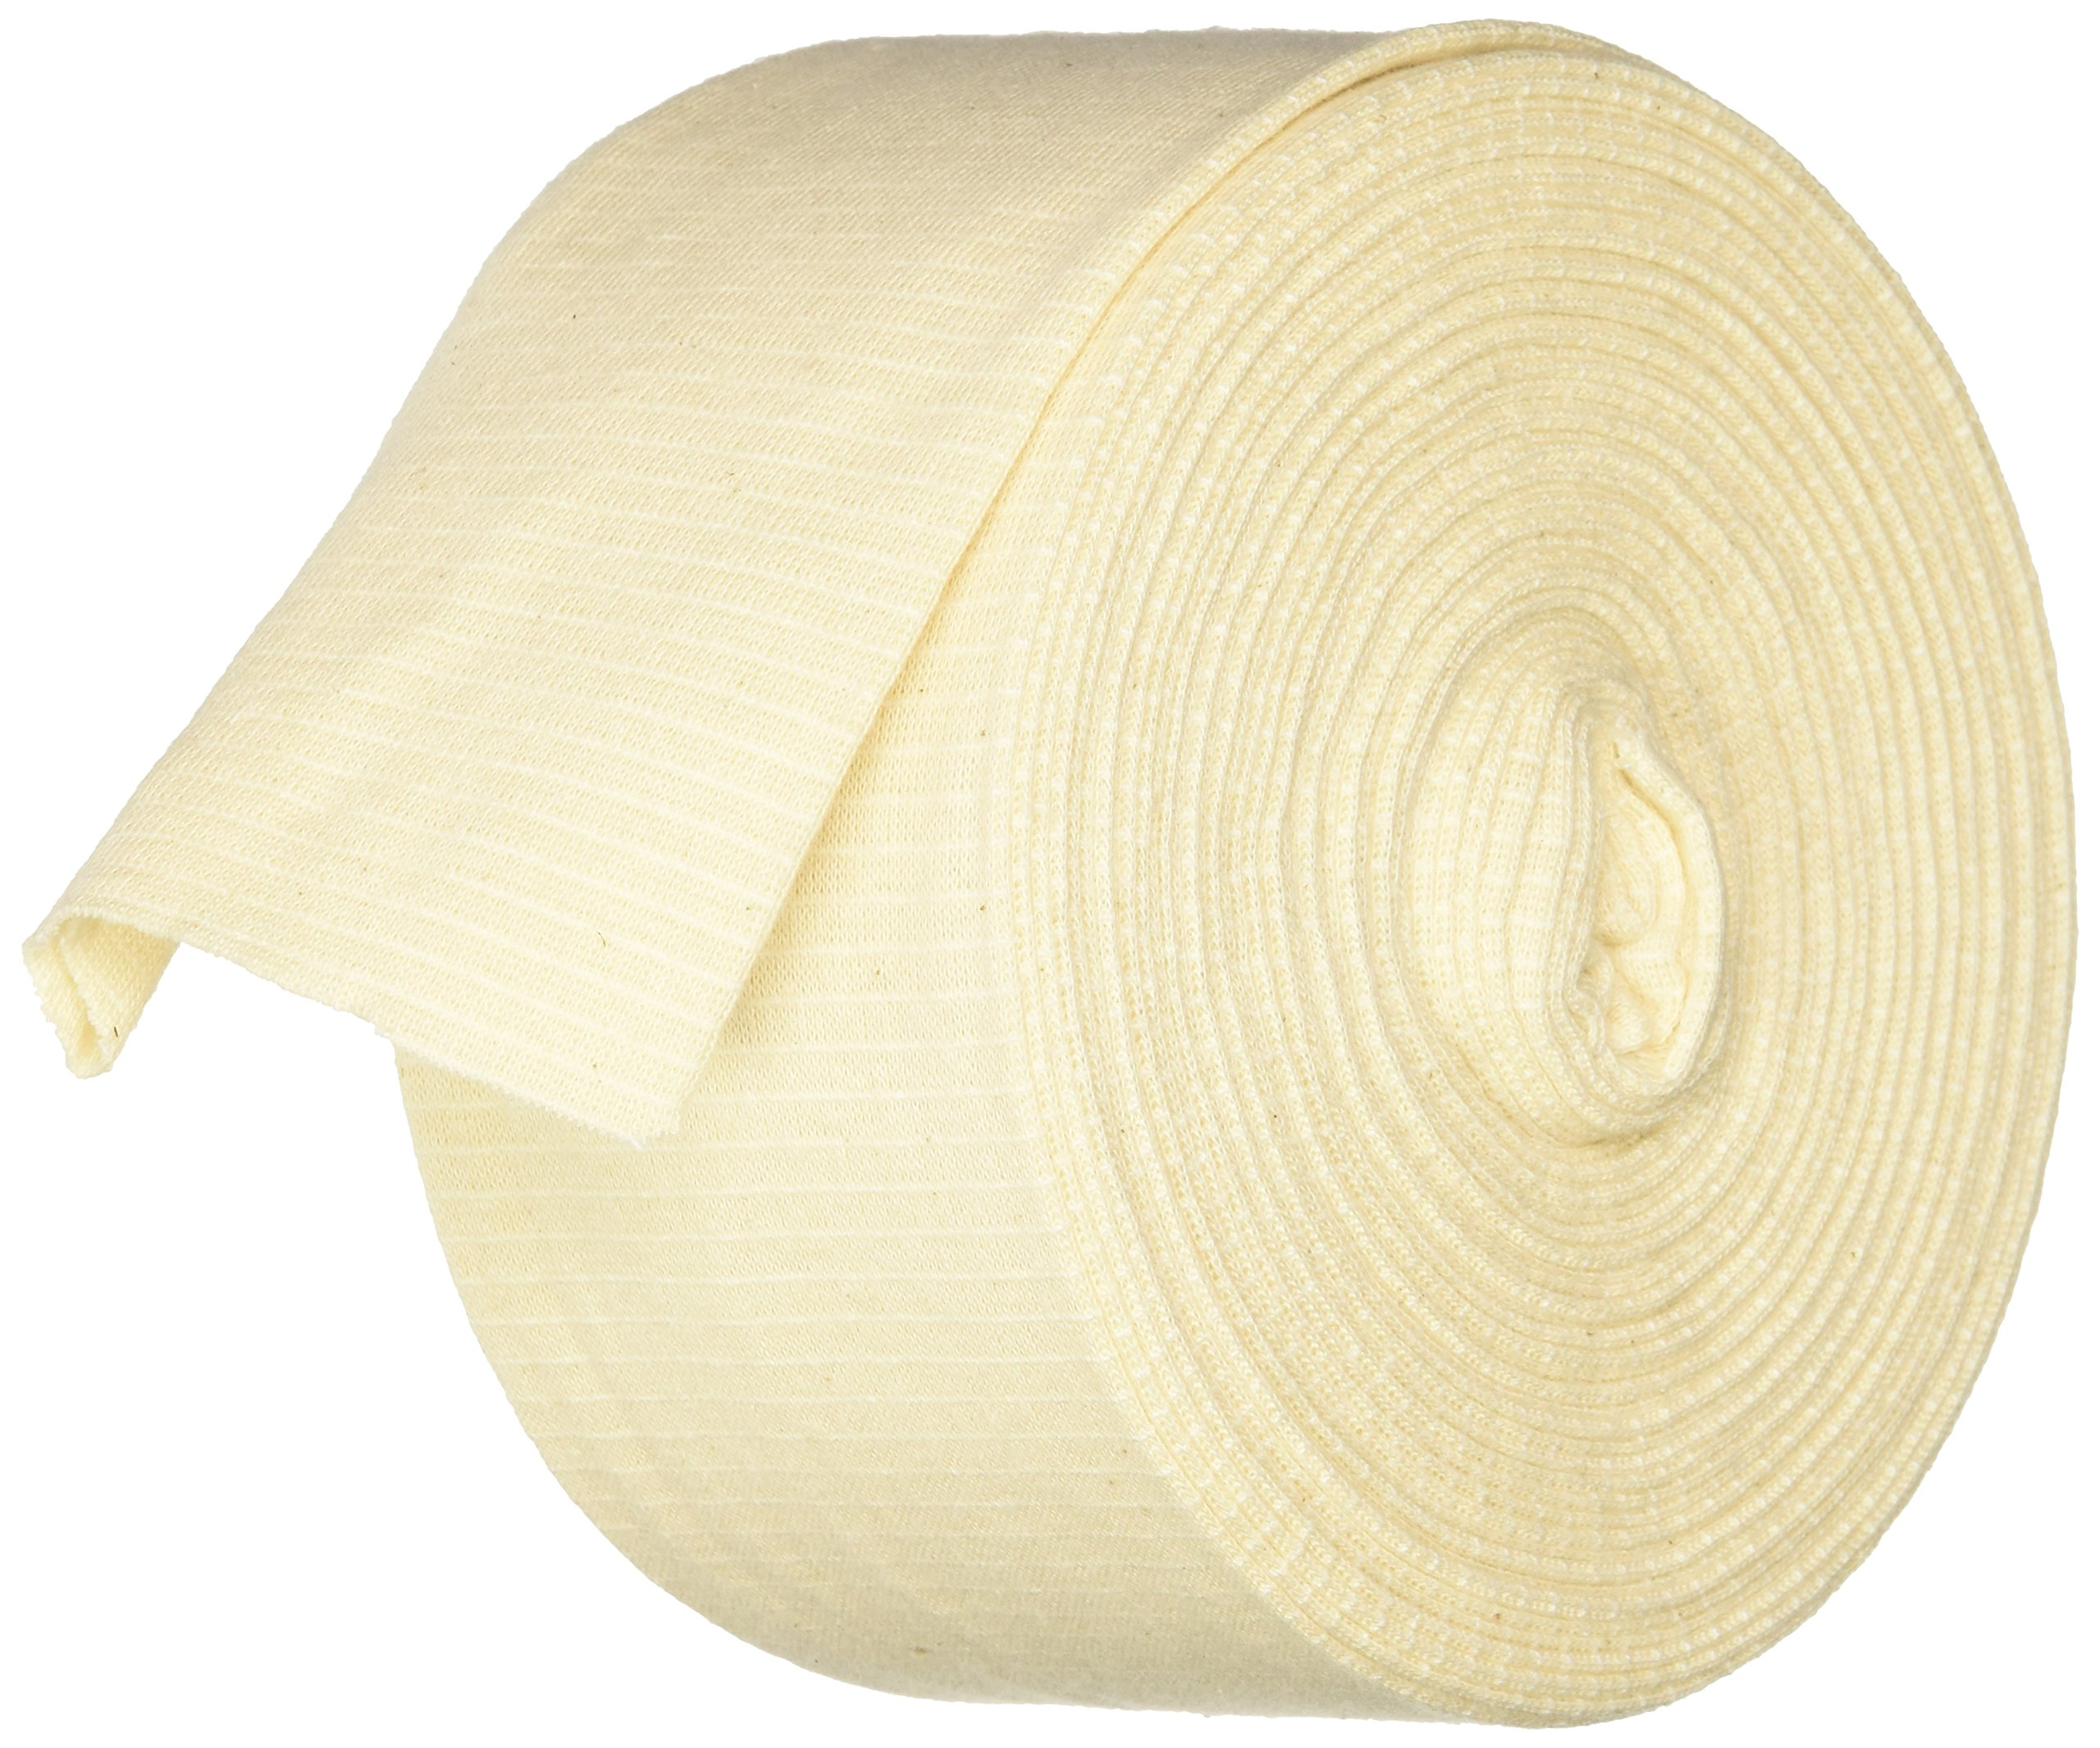 Derma Sciences GLE10 SurgiGrip Tubular Elastic Support Bandage, Legs or Small Thighs, 3.5'' Width, 11 yd Length